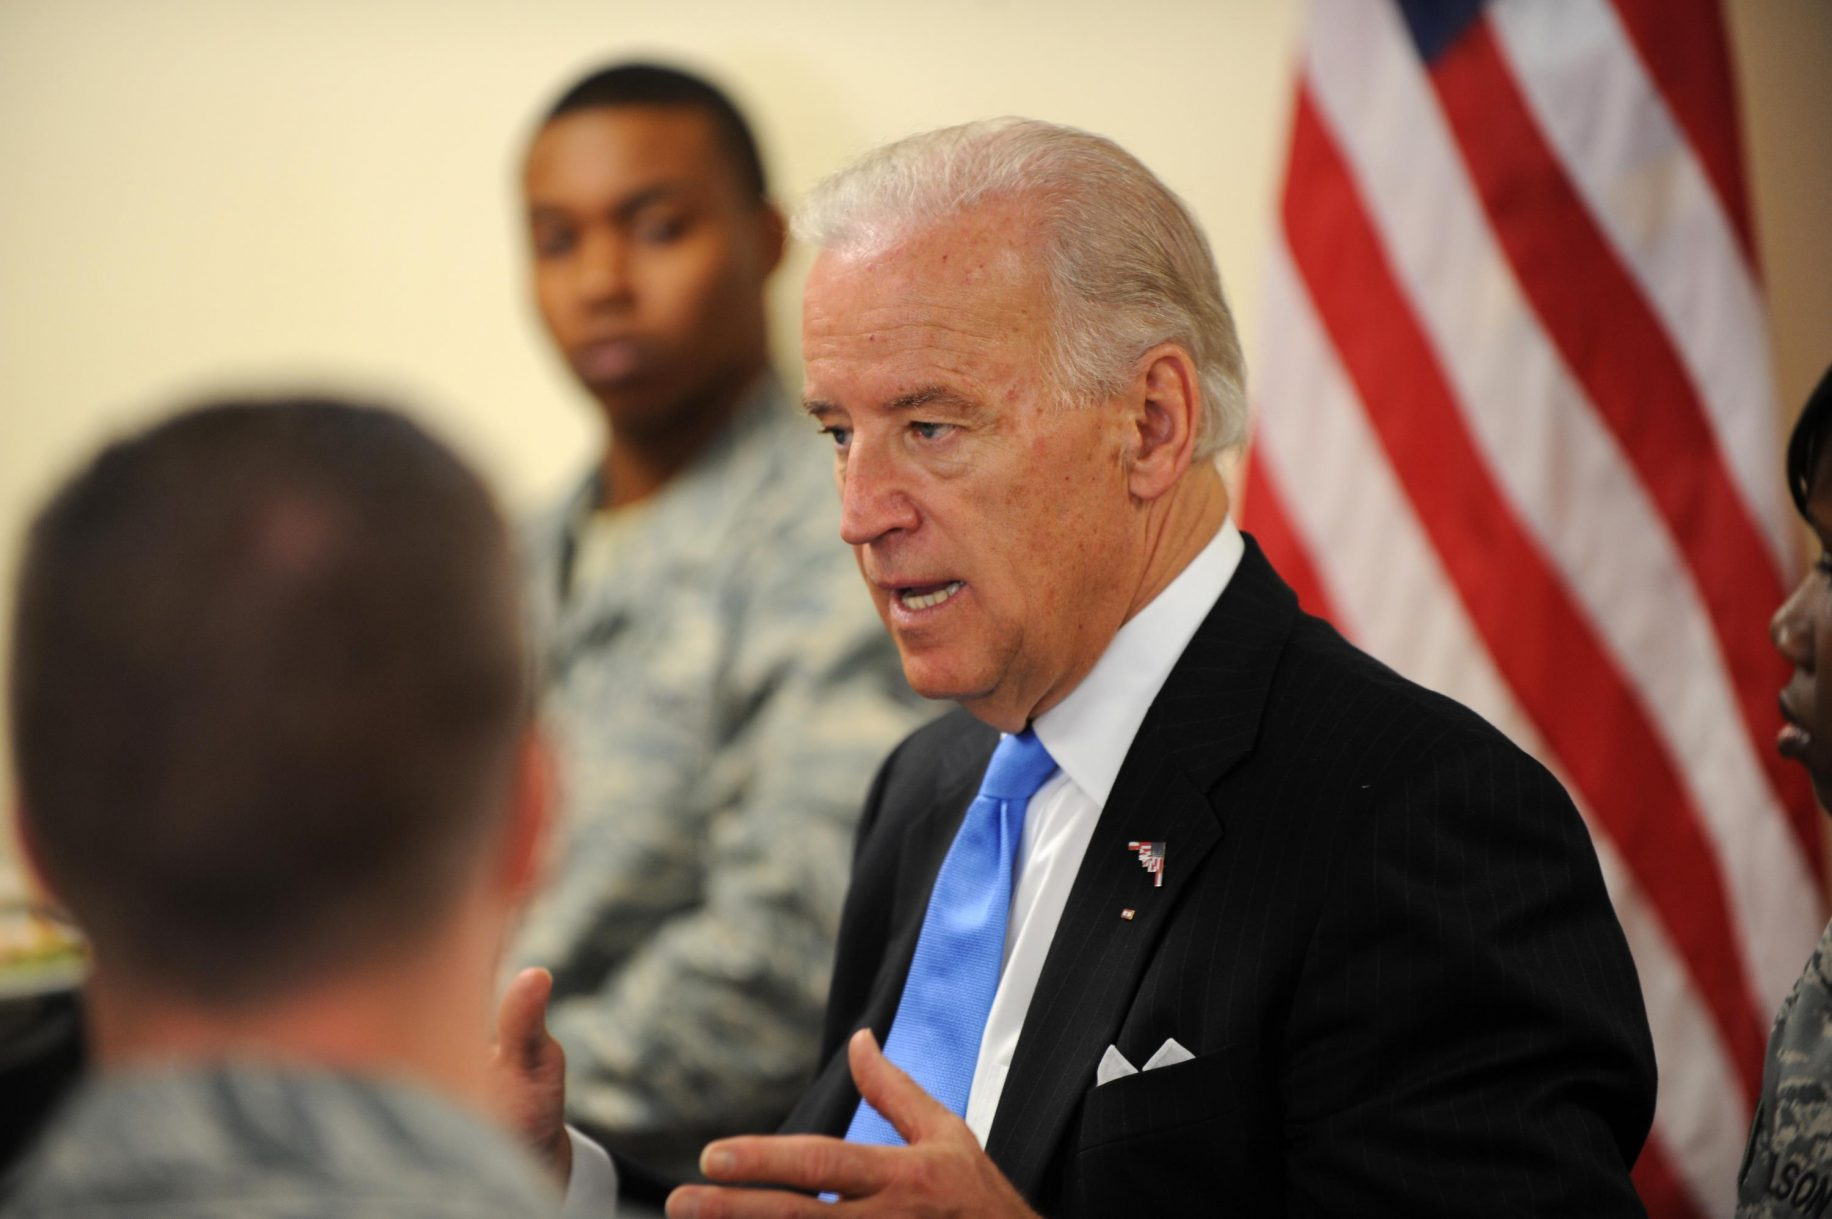 Joe Biden says 'no one needs AR-15s; weapons of war'